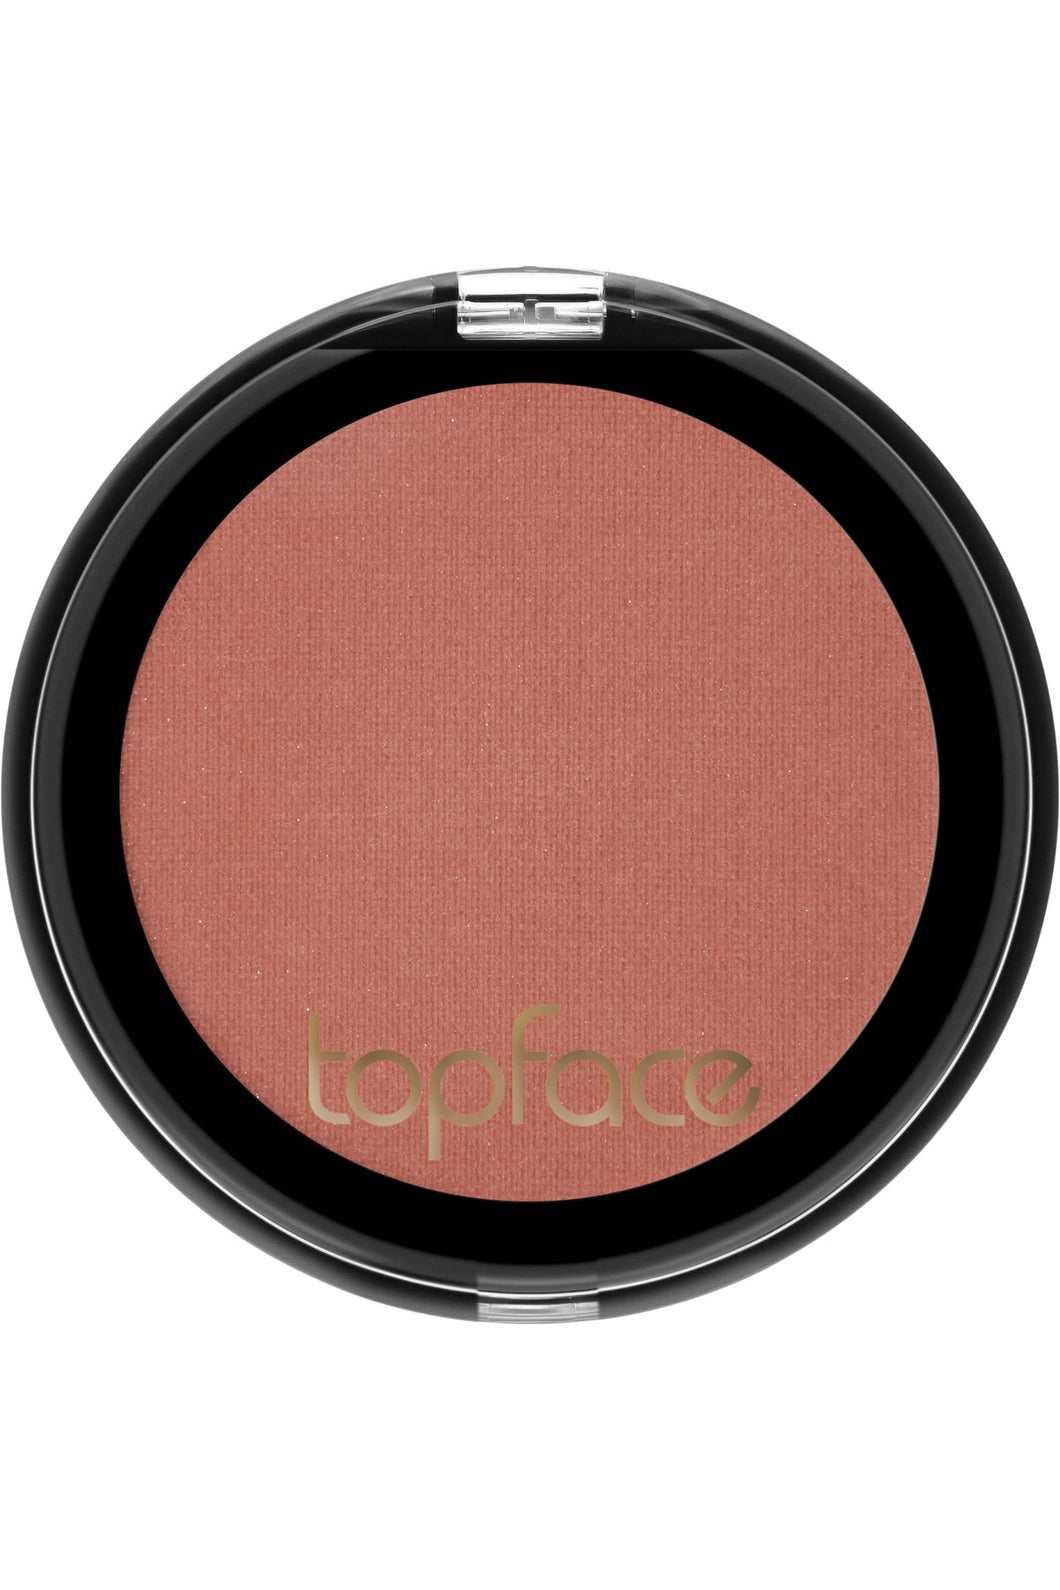 Topface - Instyle Matte Mono Eyeshadow - 108 - Red Brown